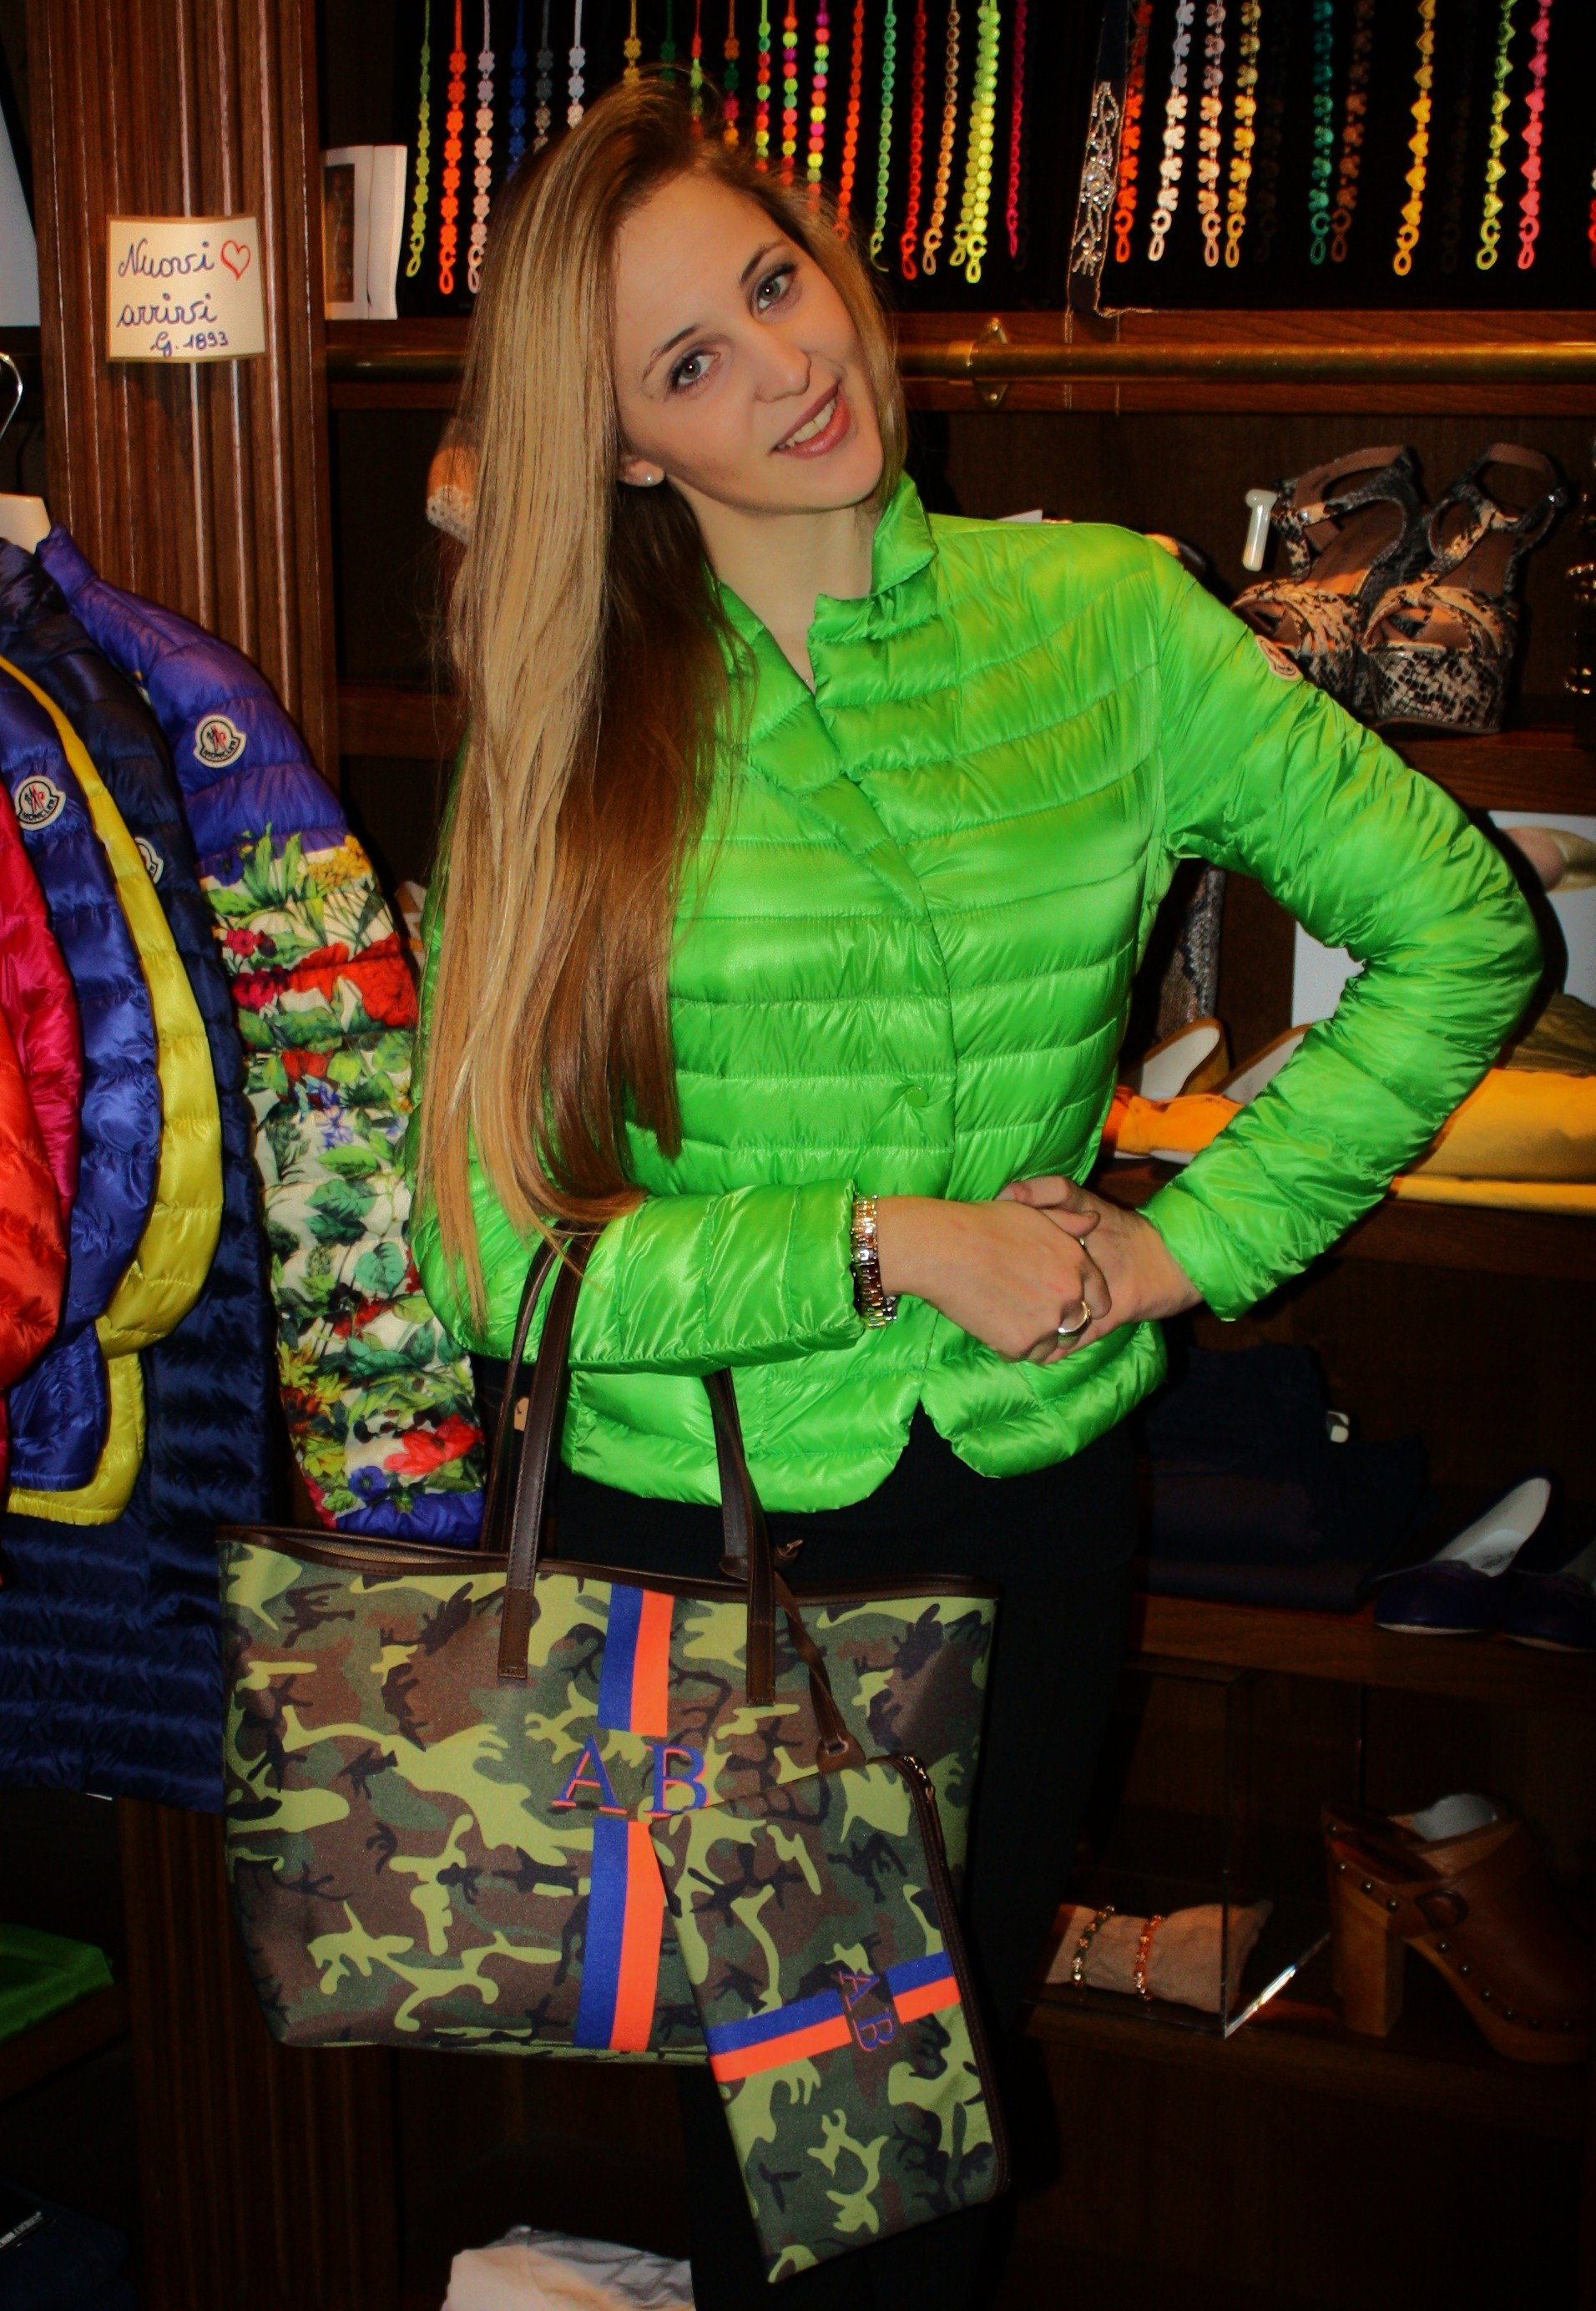 TUA BAG MILITARY & MONCLER JACKET Lifestyleandchilling for Ghiglino